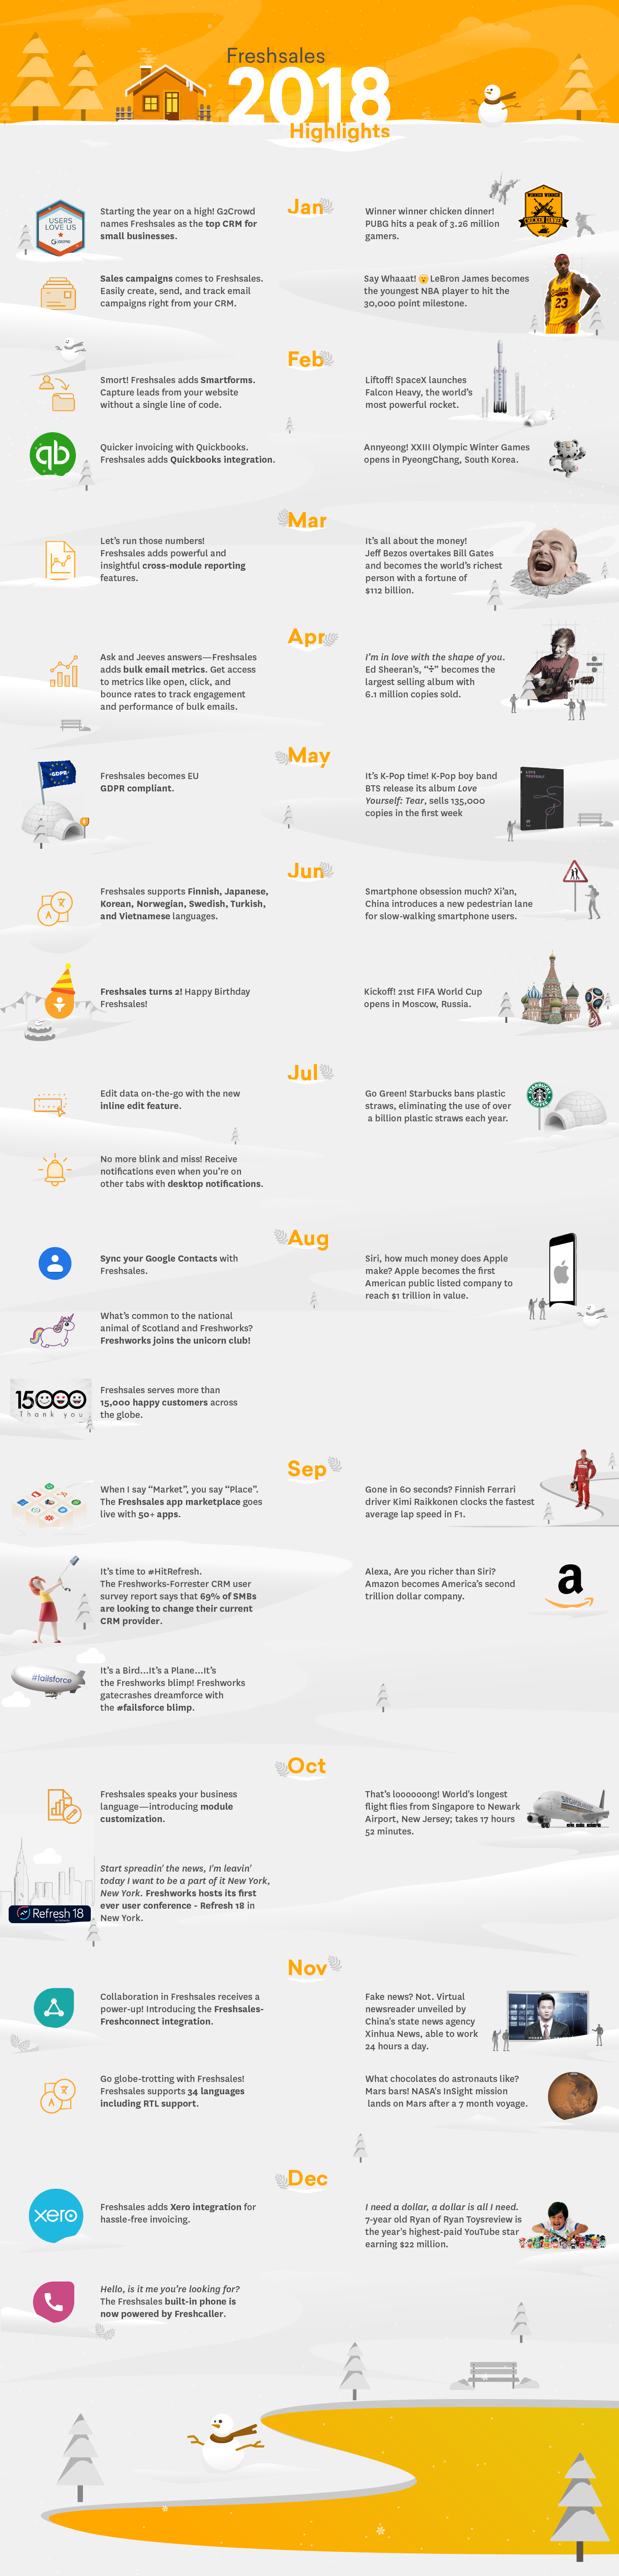 2018 Year in Review Timeline Graphic